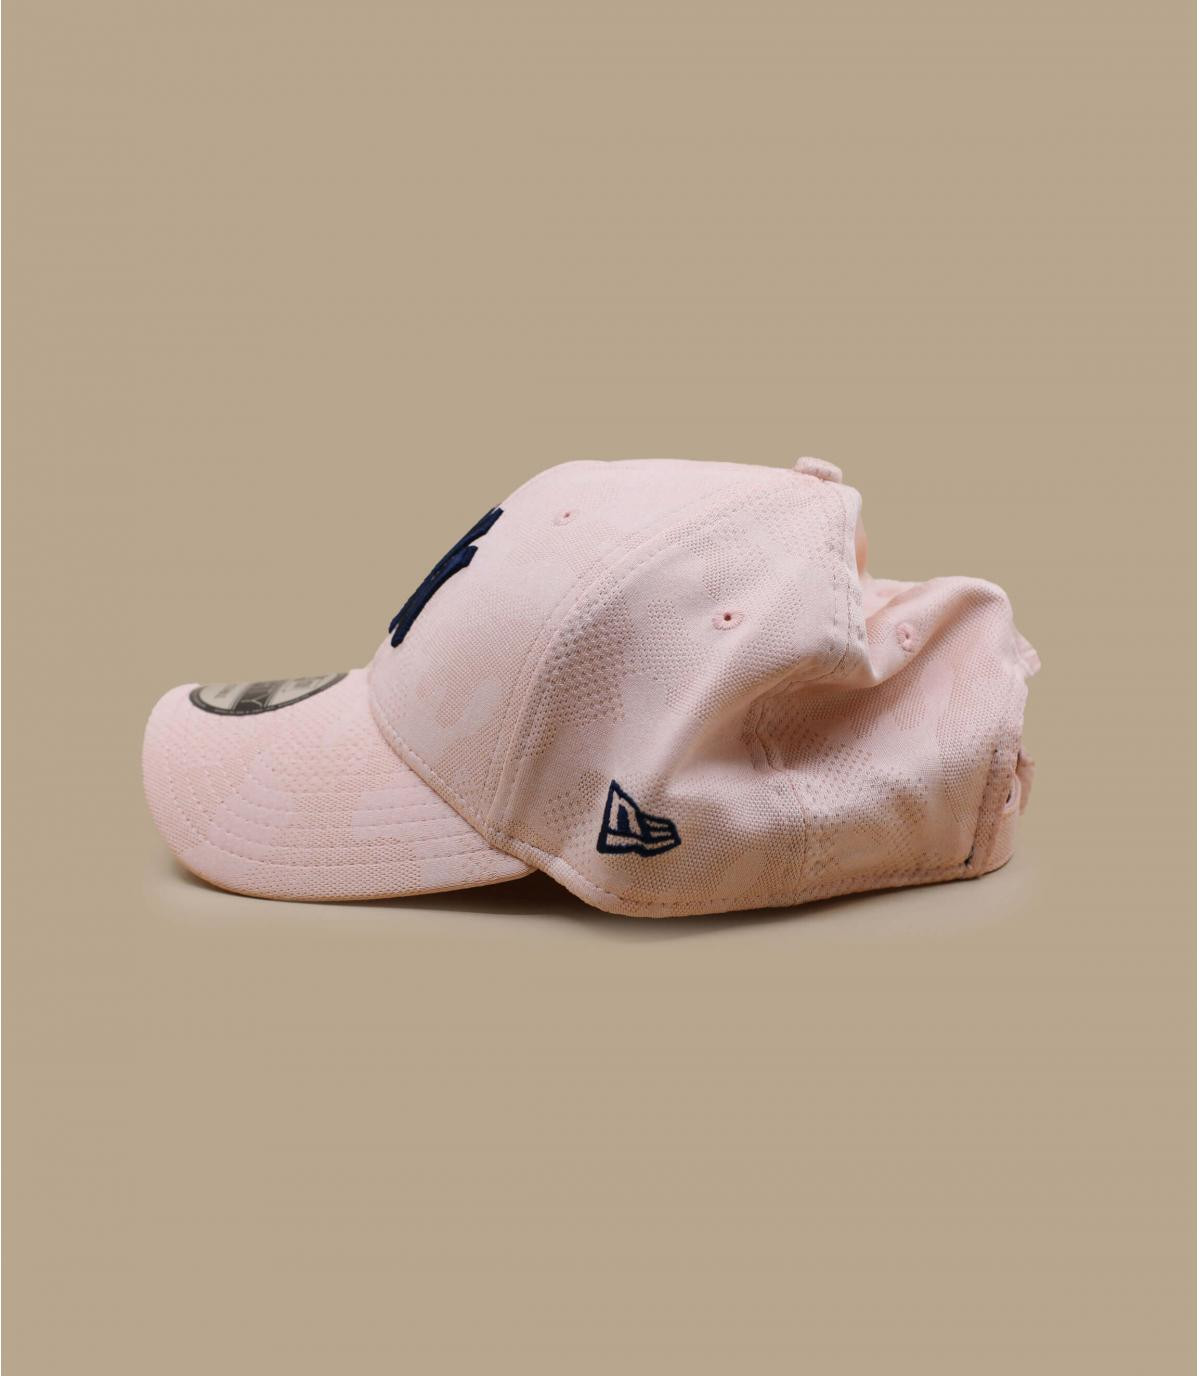 Détails Casquette Enginneered Plus NY 940 blush navy - image 3